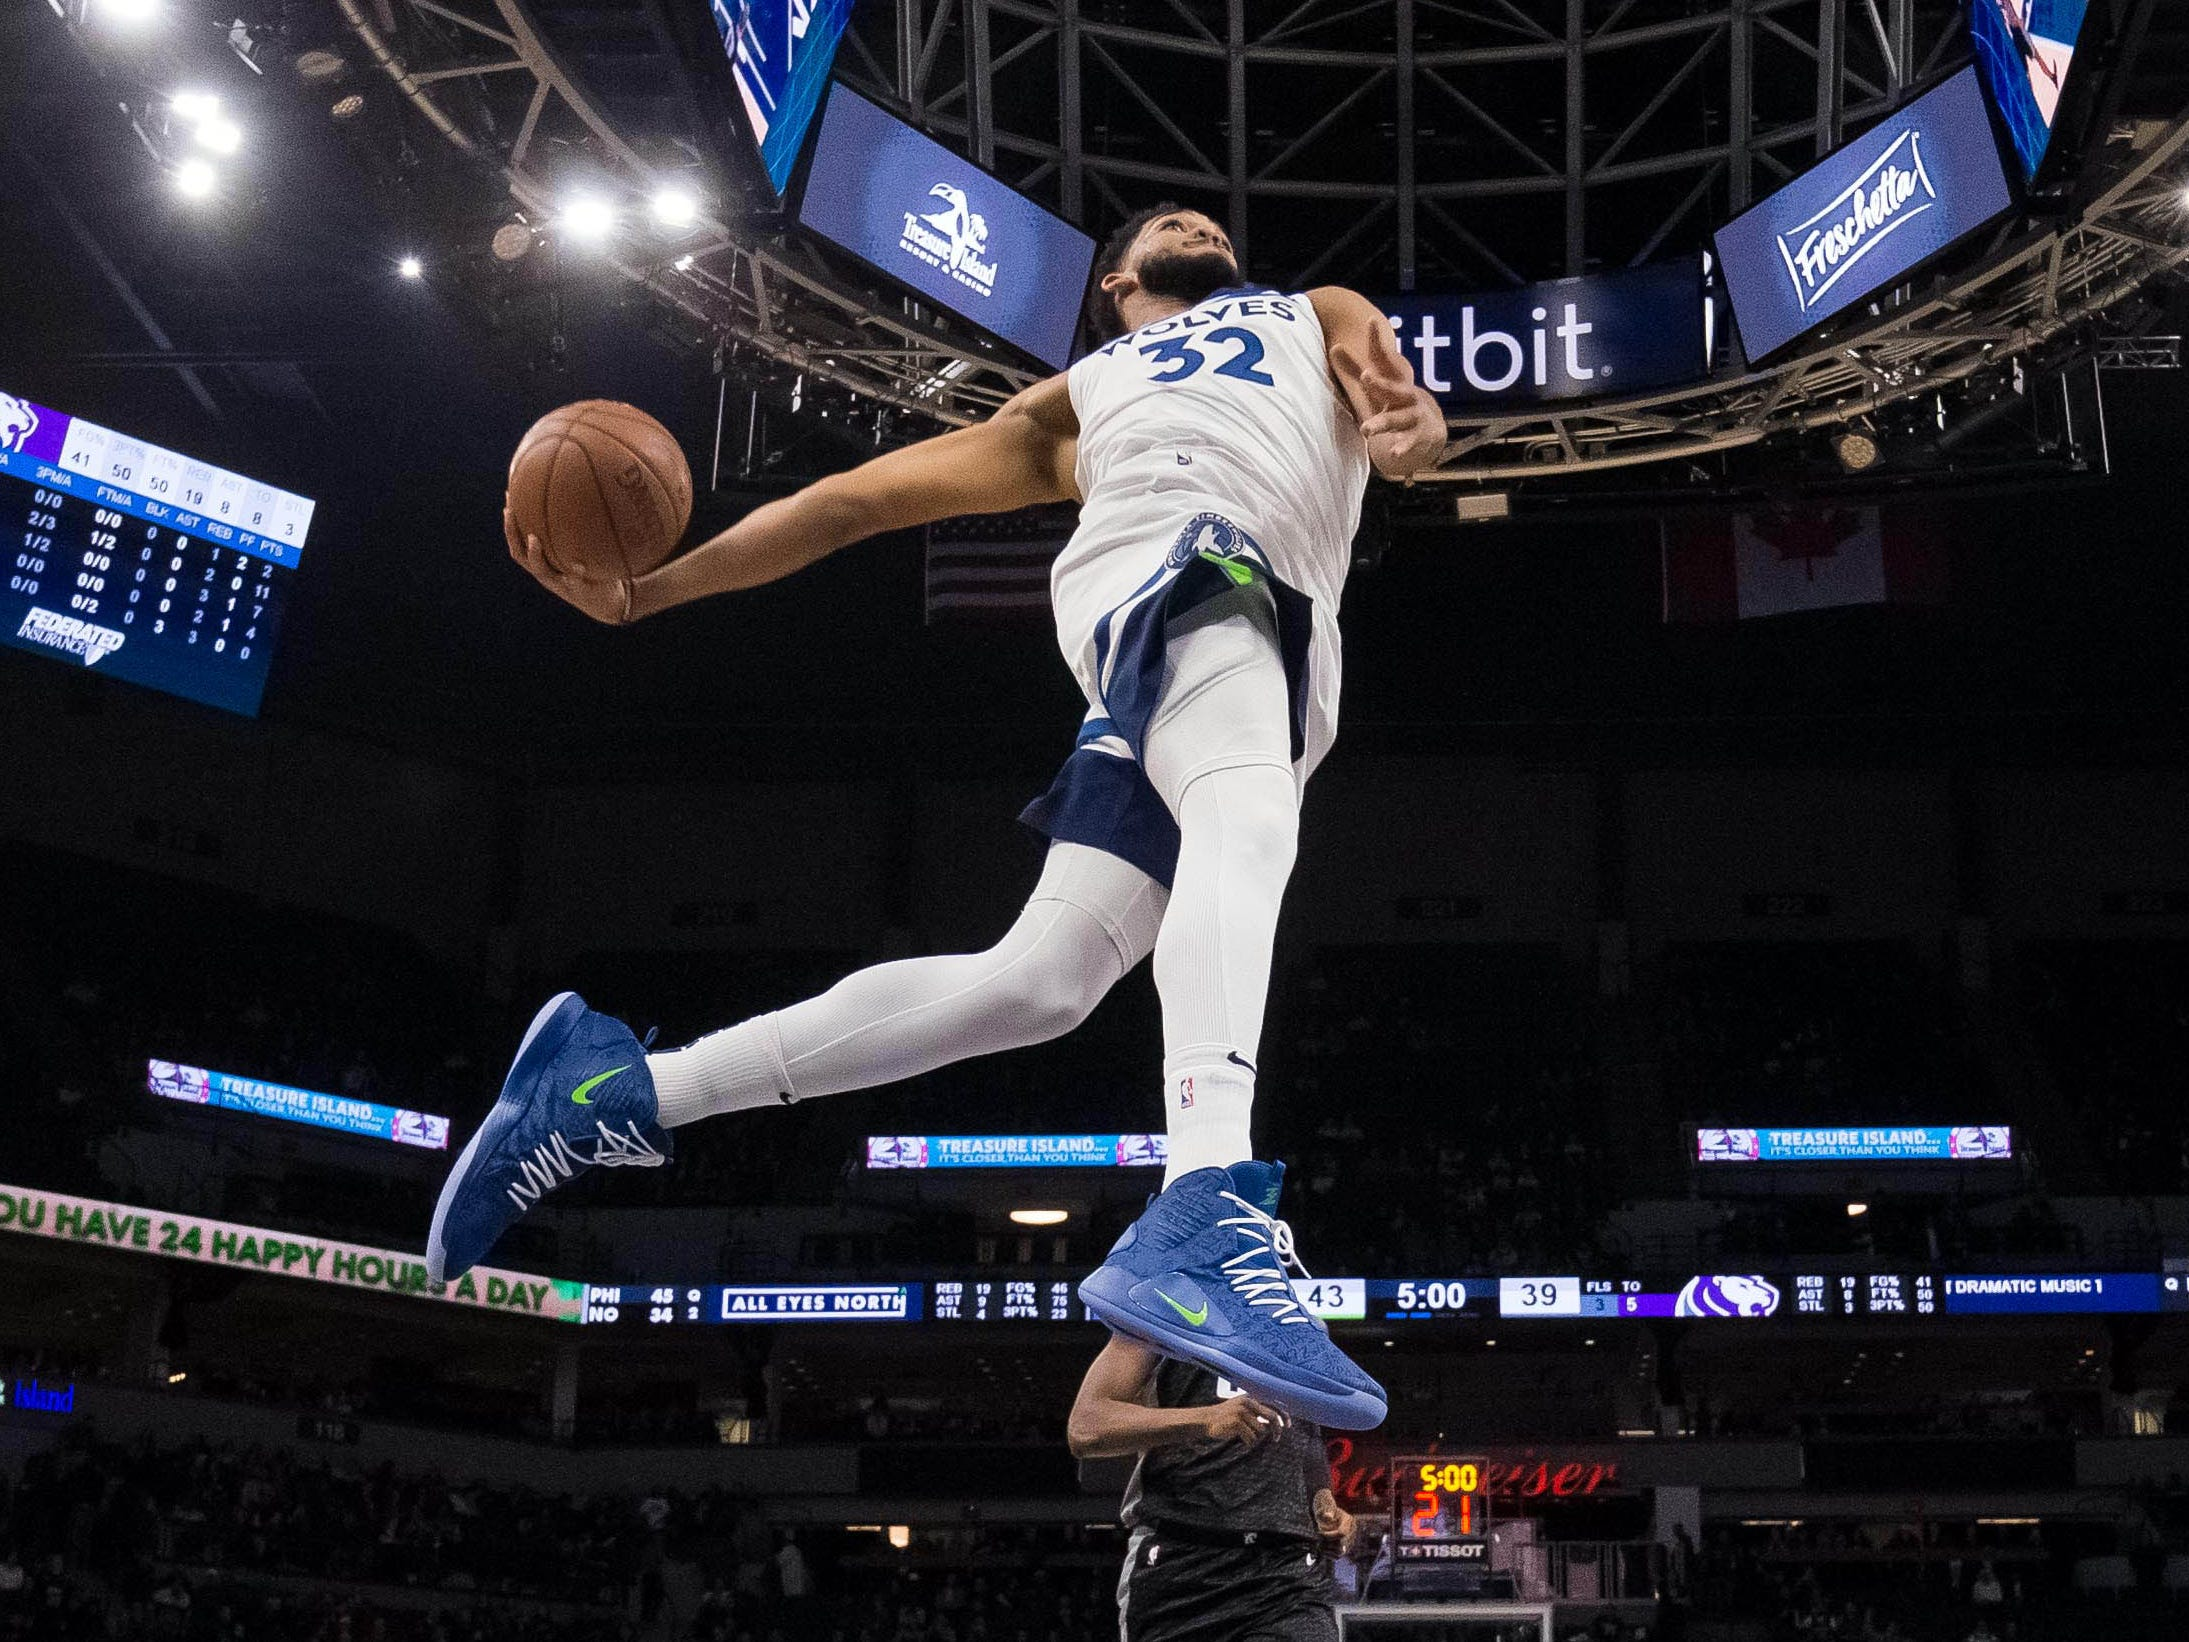 Feb. 25: Timberwolves center Karl-Anthony Towns soars to the bucket for a one-handed slam on the break against the Kings.